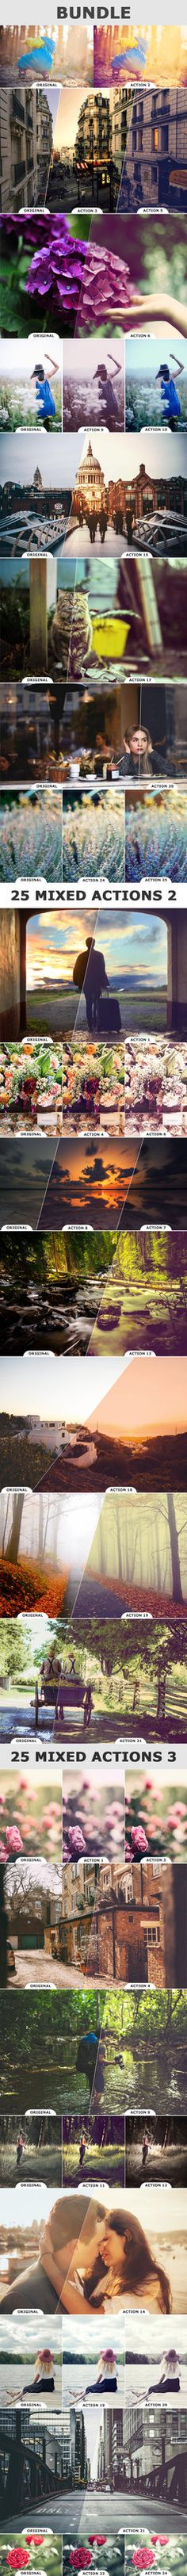 DOWNLOAD:    goo.gl/Ris3Rx75 Mixed Actions BUNLDE 3 on 1 Mixed Photoshop Actions for your Photography, Images, Artworks.. Great Photo Effects! Easy use! Share if you like it! Download! En...